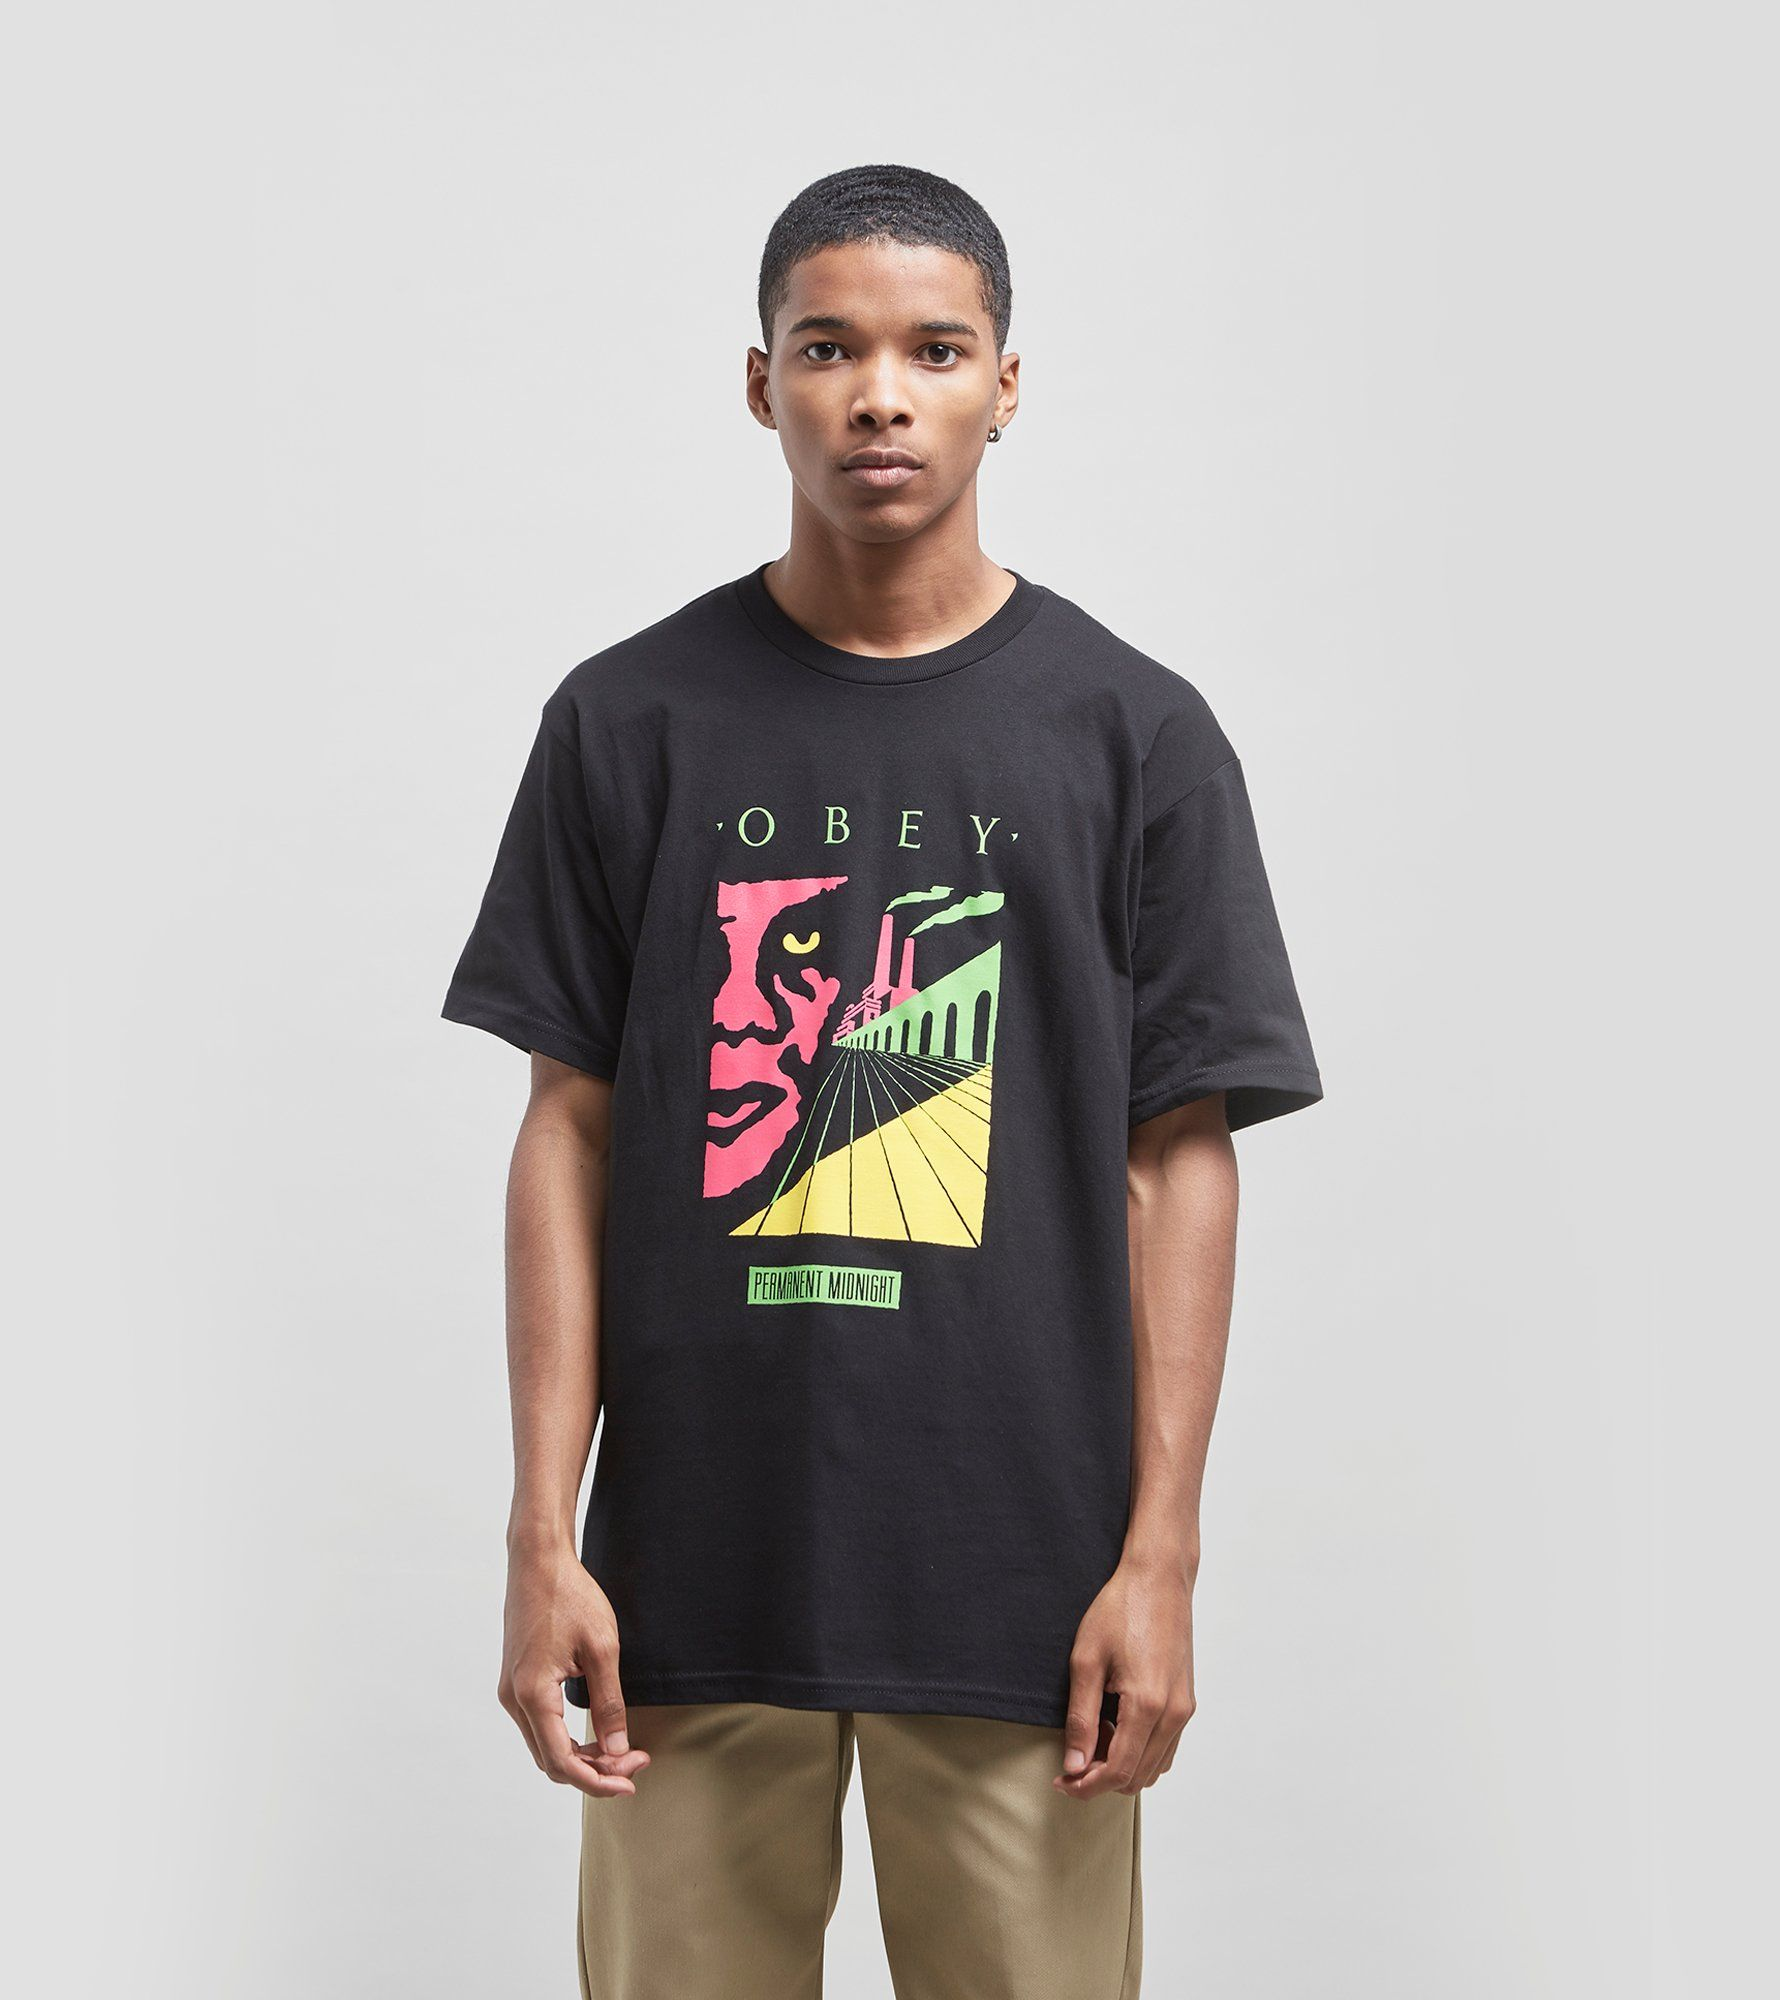 Obey Permanent Midnight T Shirt by Obey